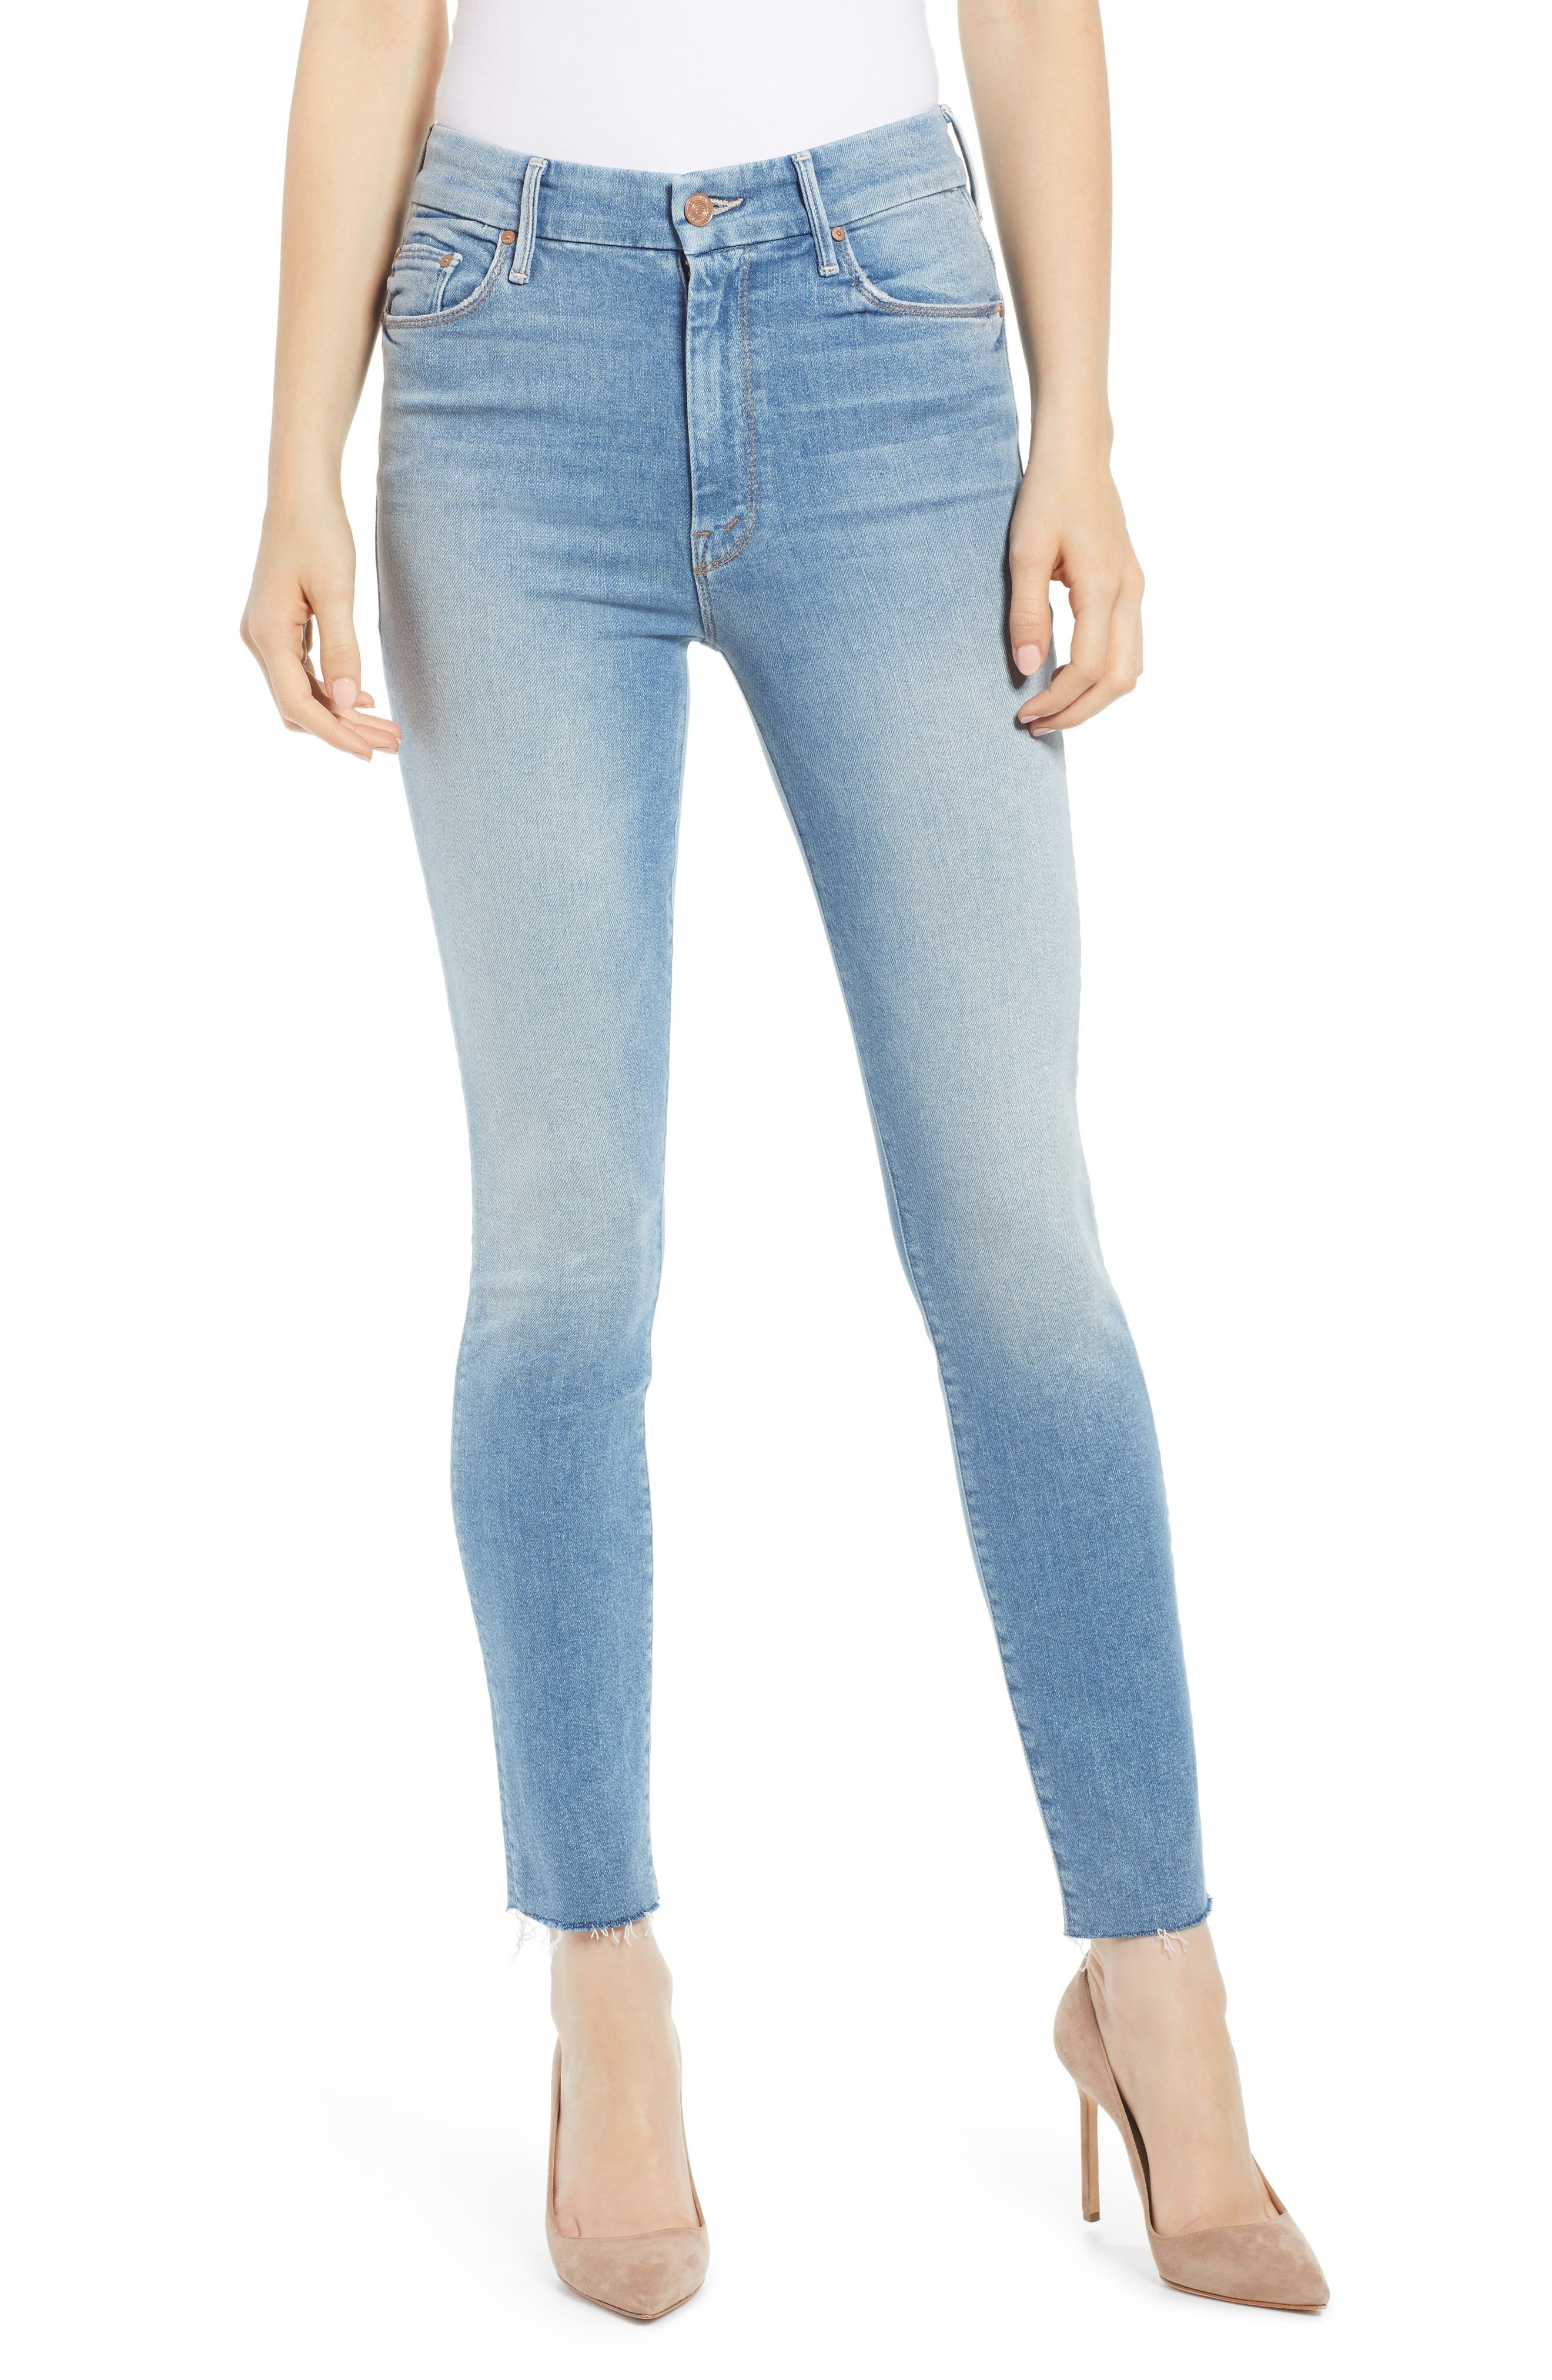 MOTHER The Looker High Waist Fray Ankle Skinny Jeans, Main, color, LEOPARD